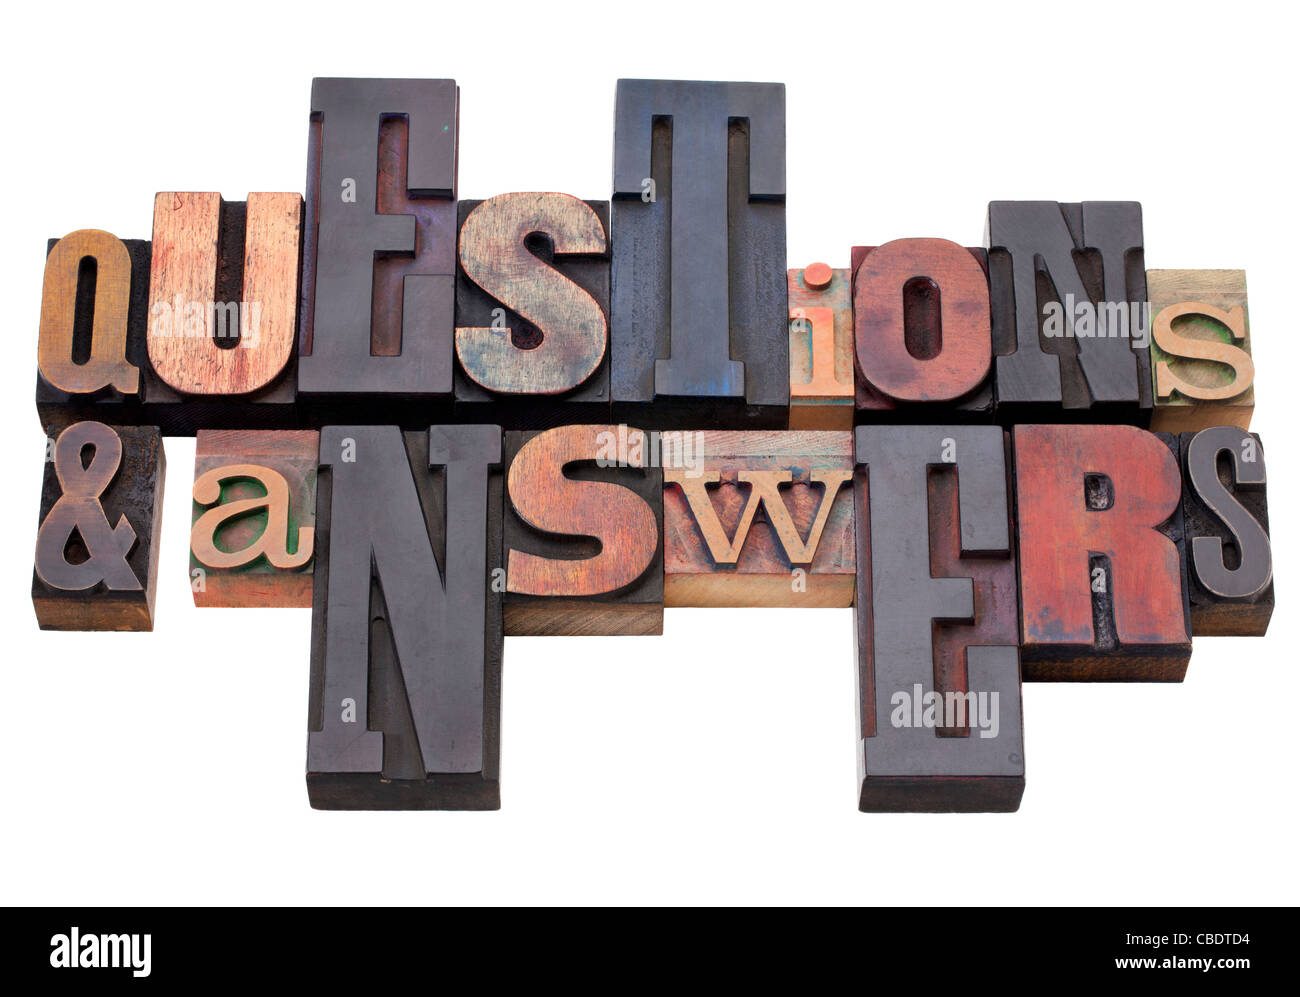 questions and answers - word abstract in antique wood letterpress printing blocks, isolated on white - Stock Image